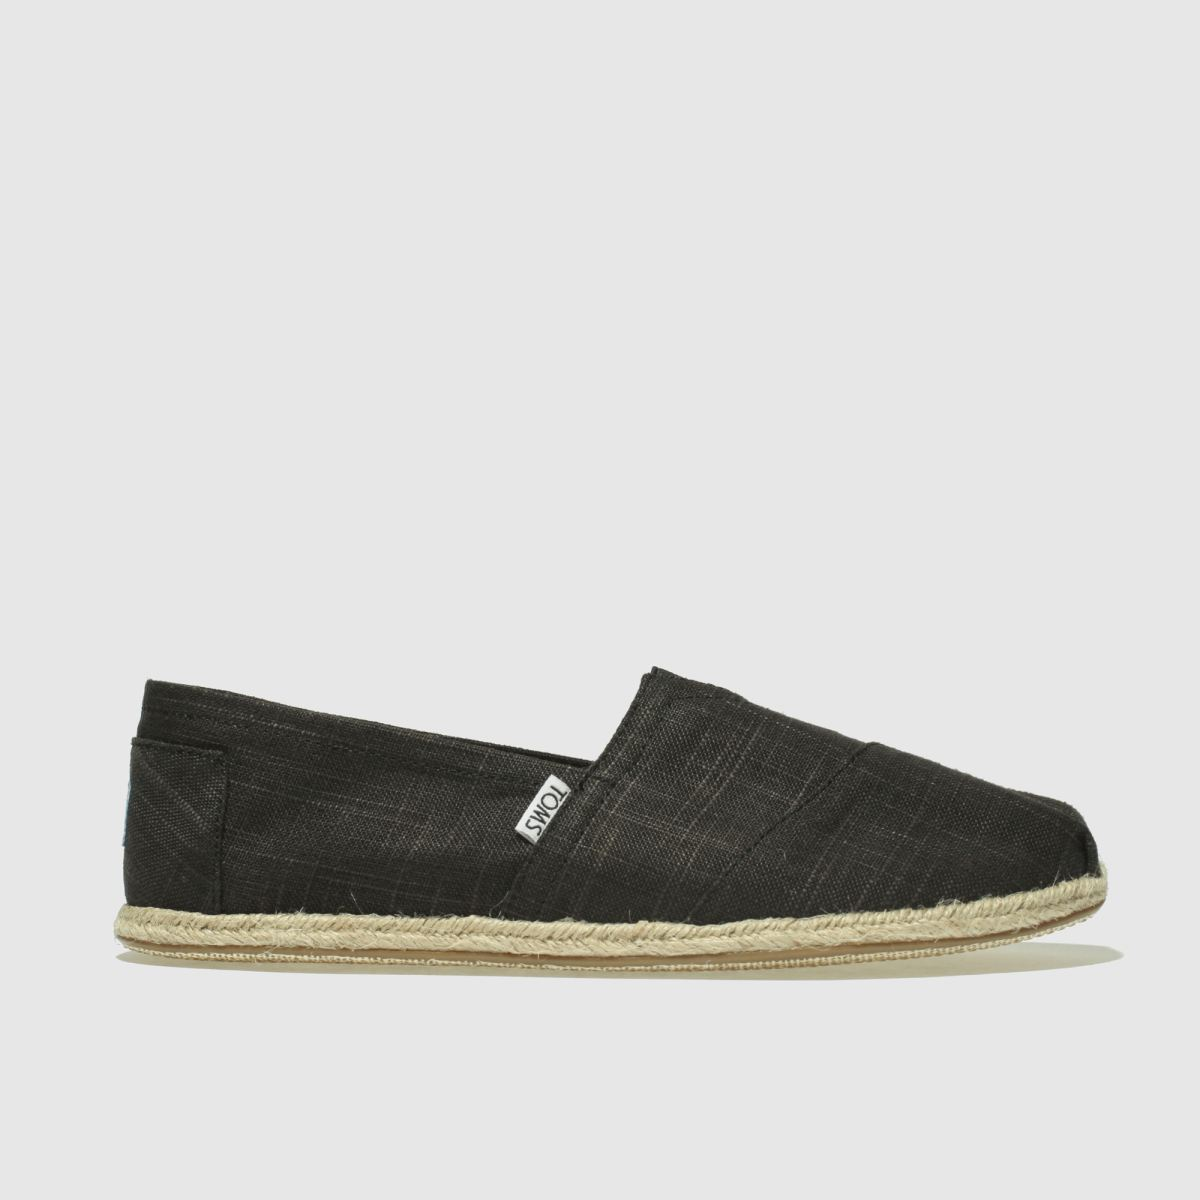 Toms Black Classic Rope Sole Shoes